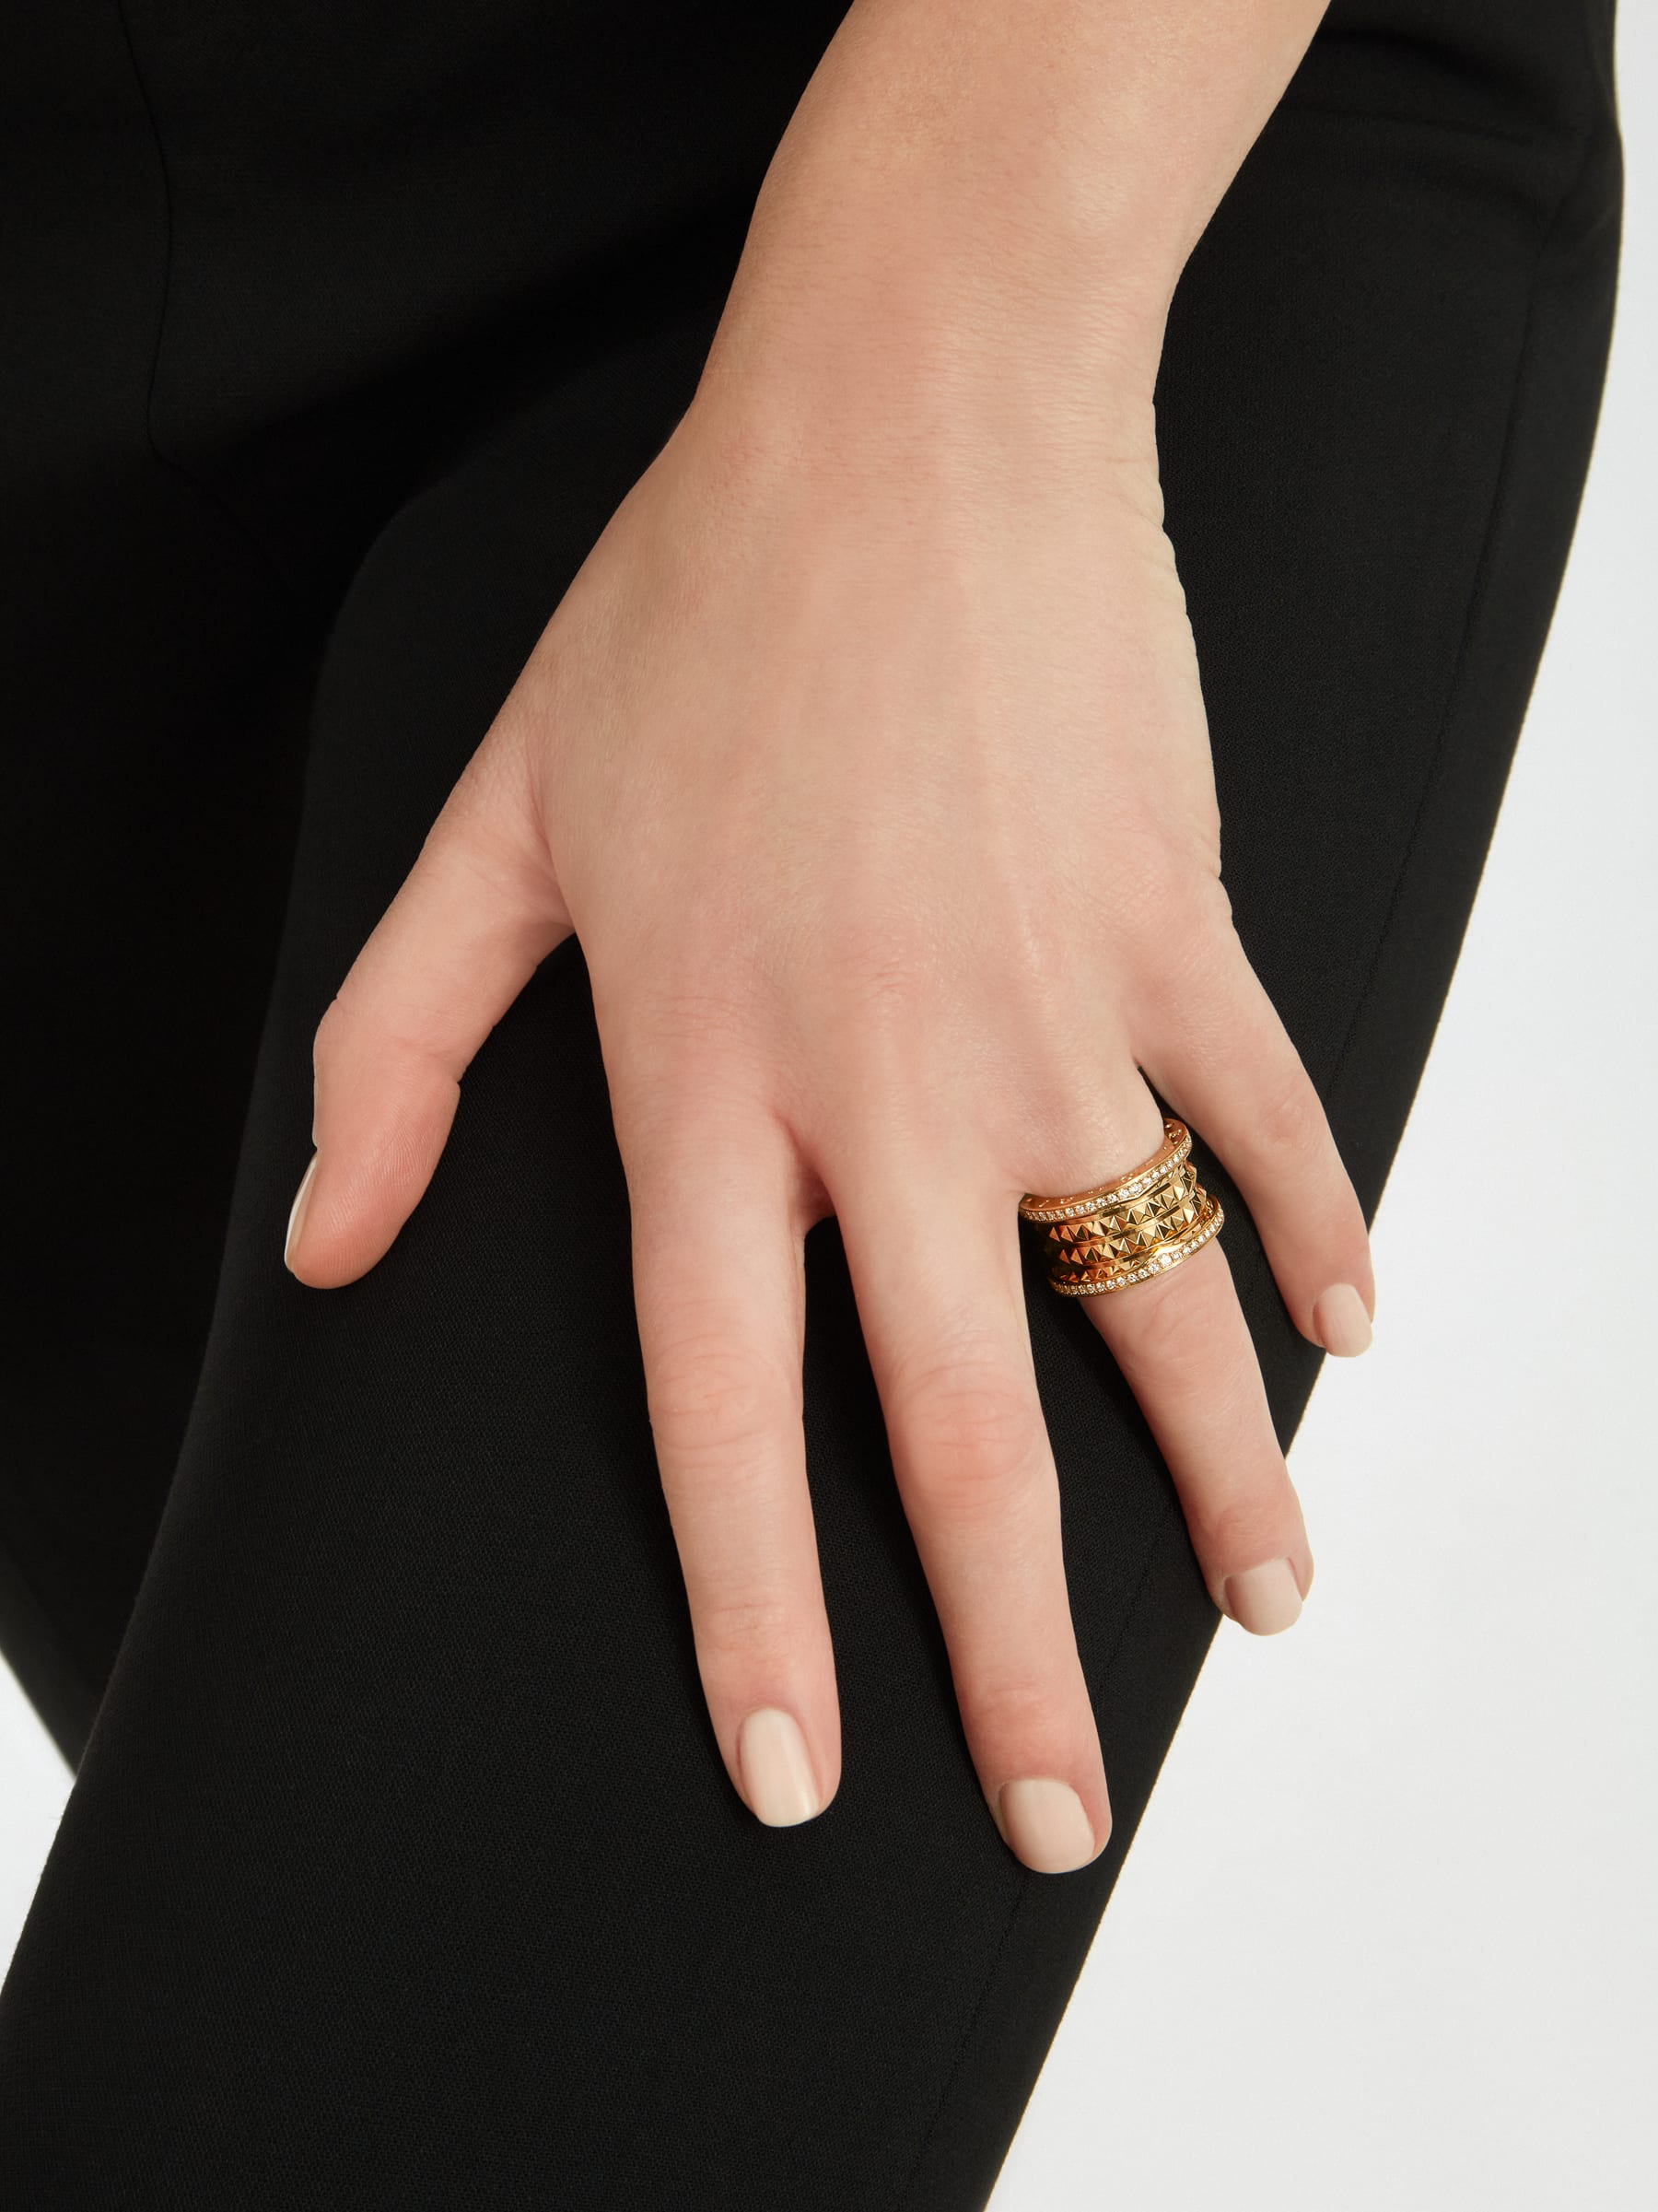 B.zero1 Rock four-band ring in 18 kt yellow gold with studded spiral and pavé diamonds on the edges. AN859026 image 4